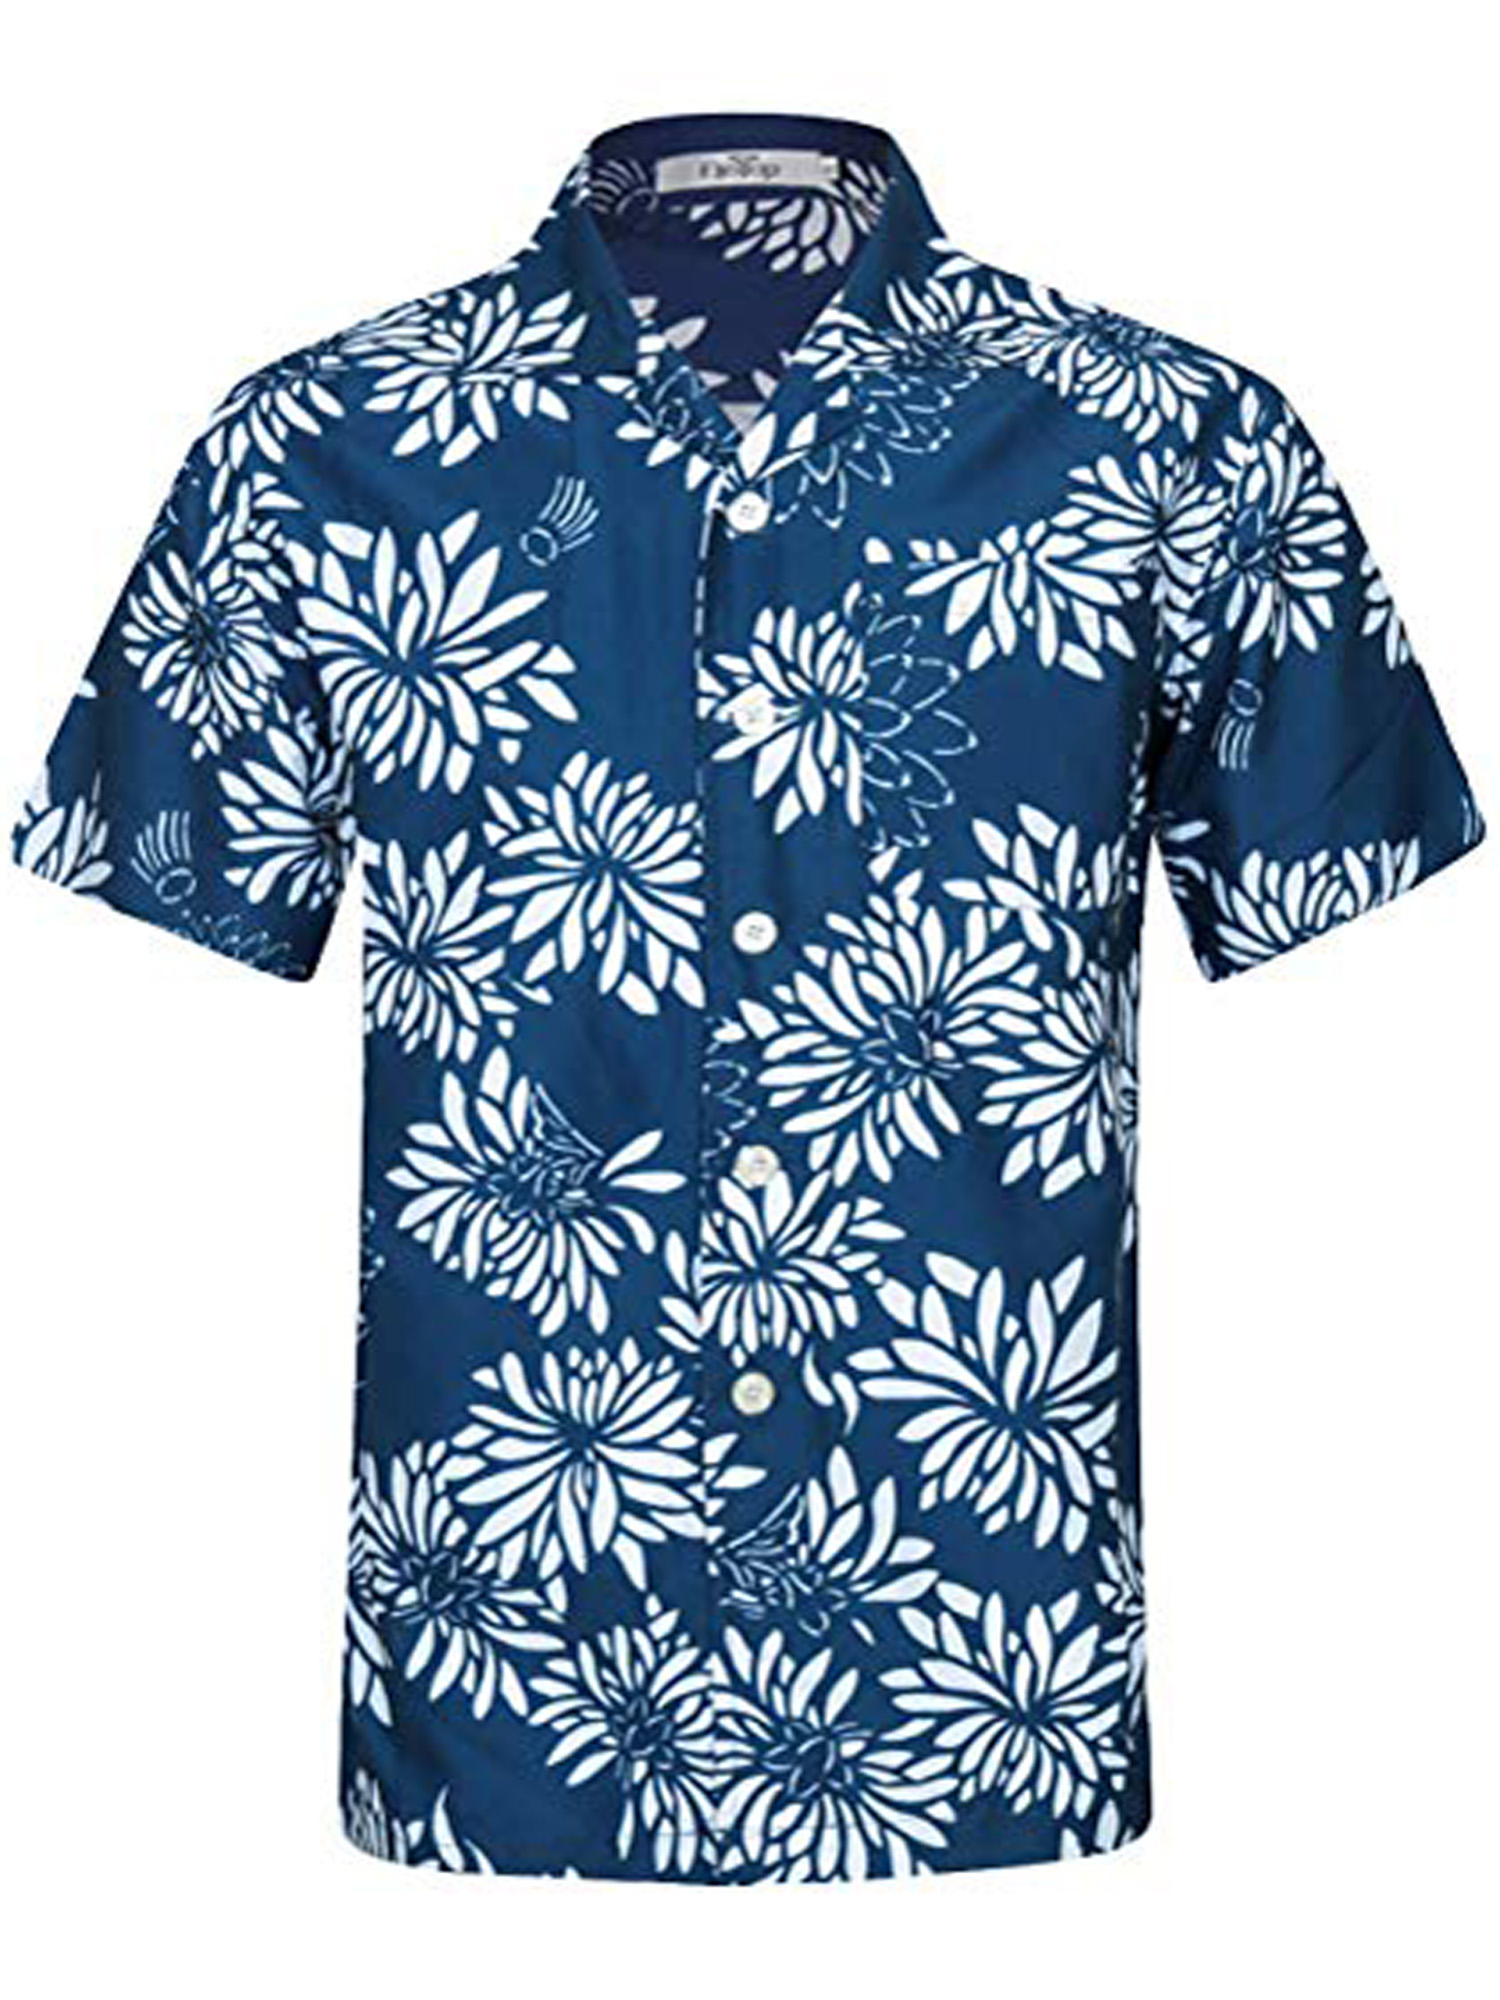 Mens Floral Printed Short Sleeved Leisure and Fashion Button Down Shirt